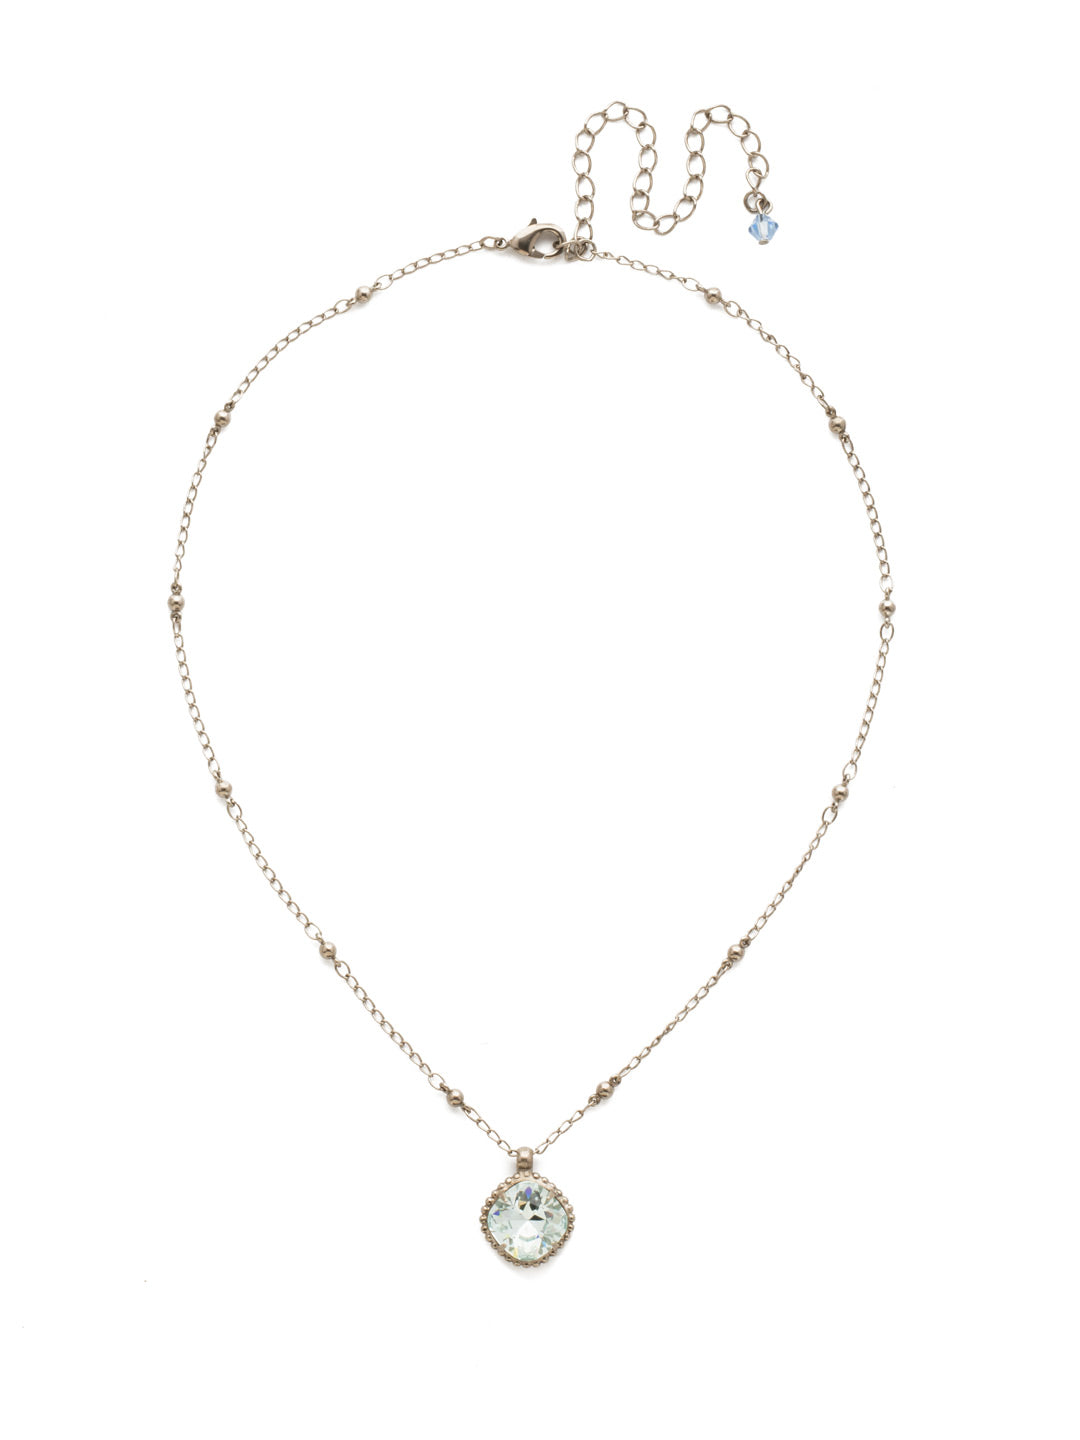 Cushion-Cut Pendant Necklace - NDS50ASLAQ